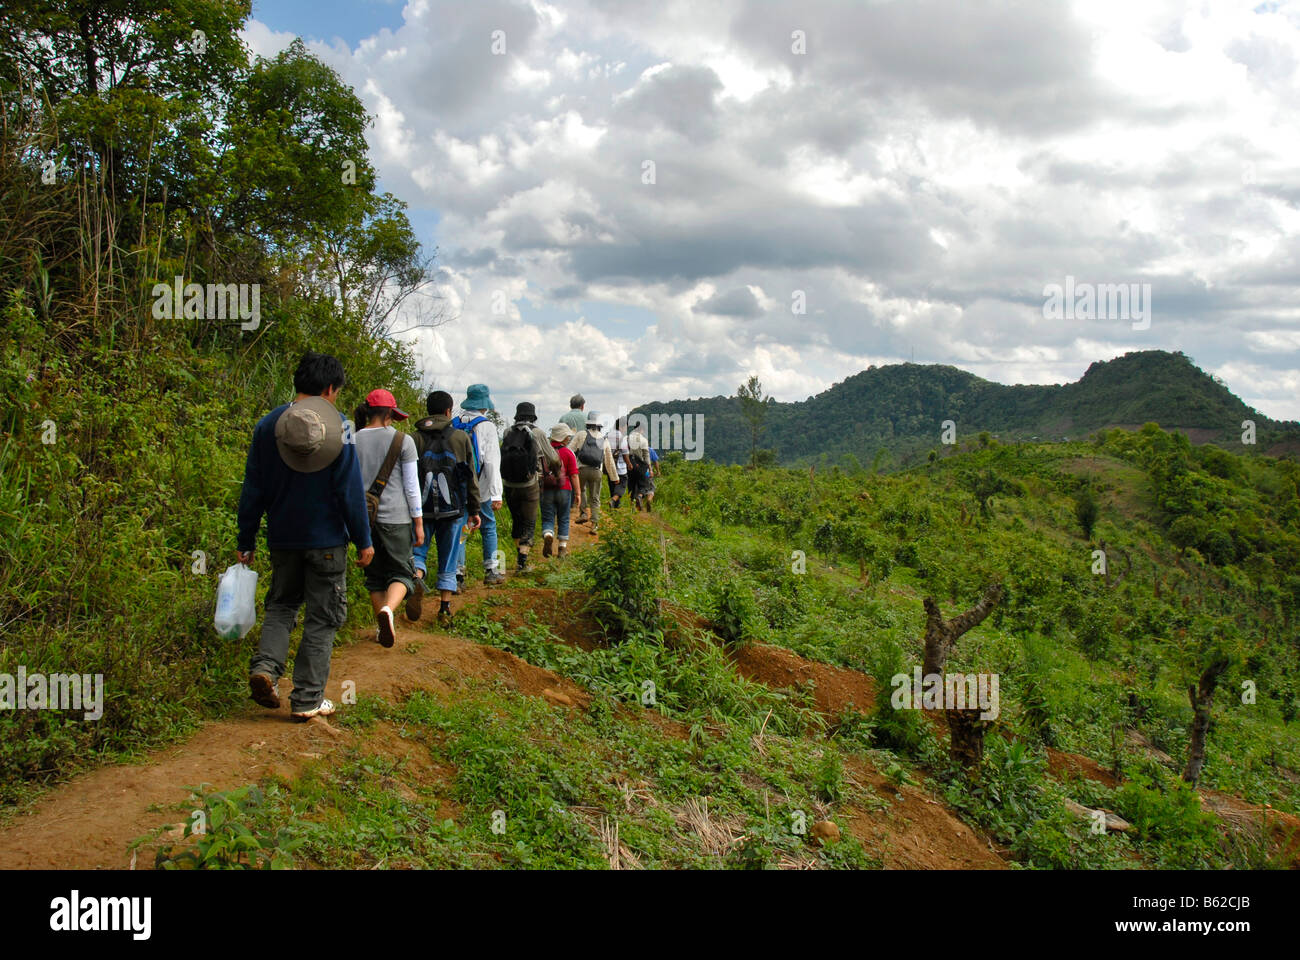 Tourists on a trekking tour in front of the Phu Fa Mountain, Phongsali Province, Laos, Southeast Asia - Stock Image